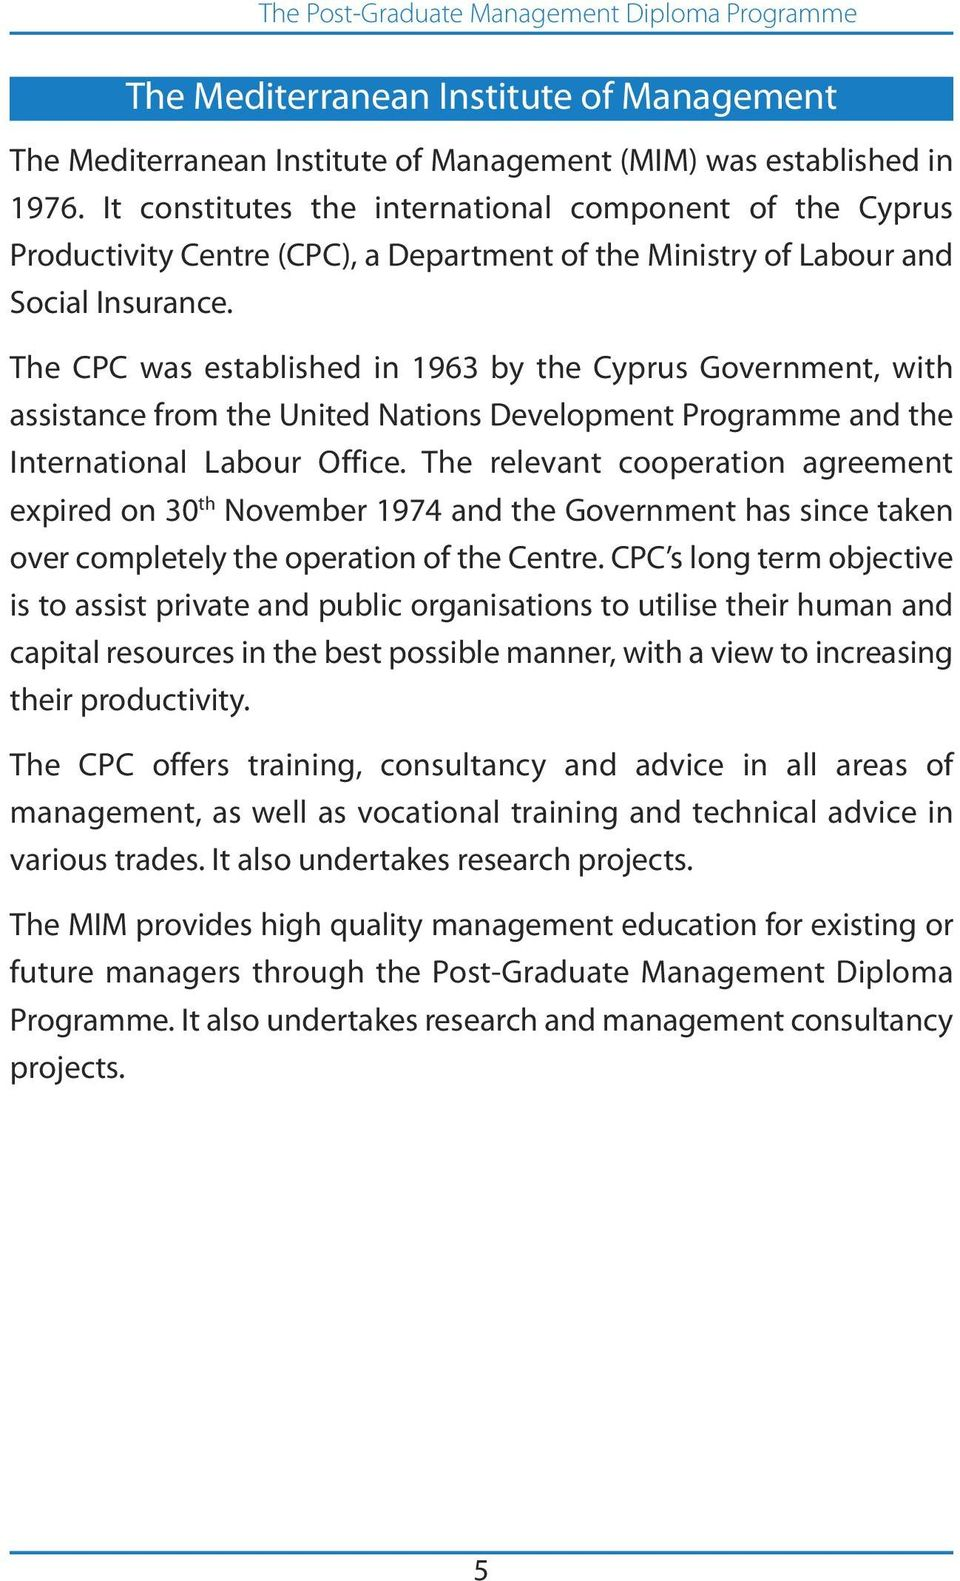 The CPC was established in 1963 by the Cyprus Government, with assistance from the United Nations Development Programme and the International Labour Office.